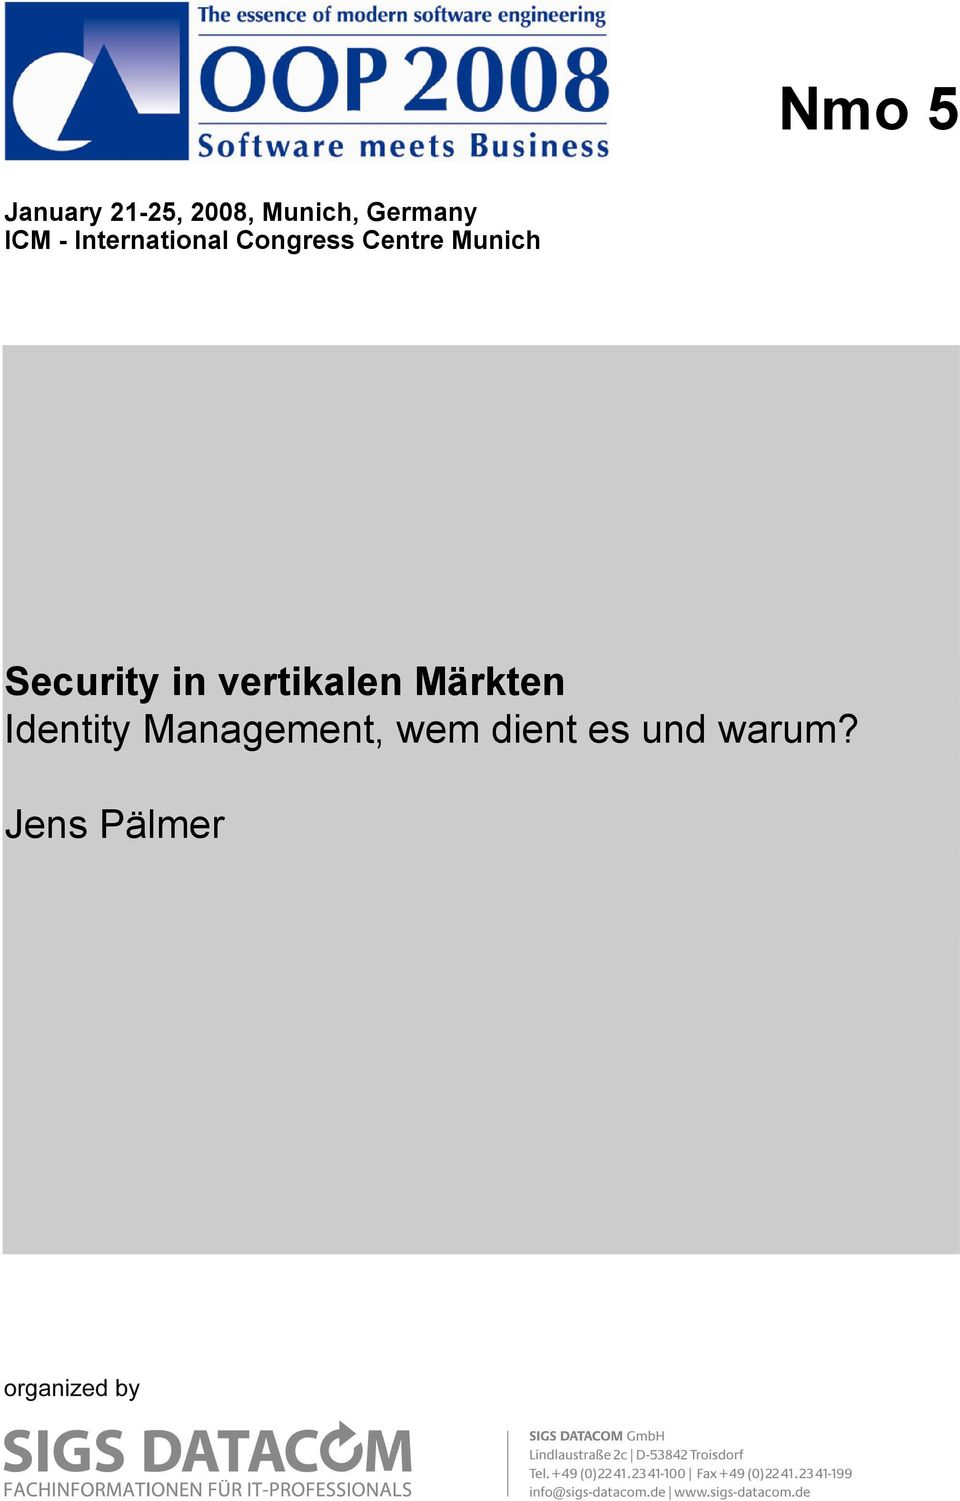 Security in vertikalen Märkten Identity